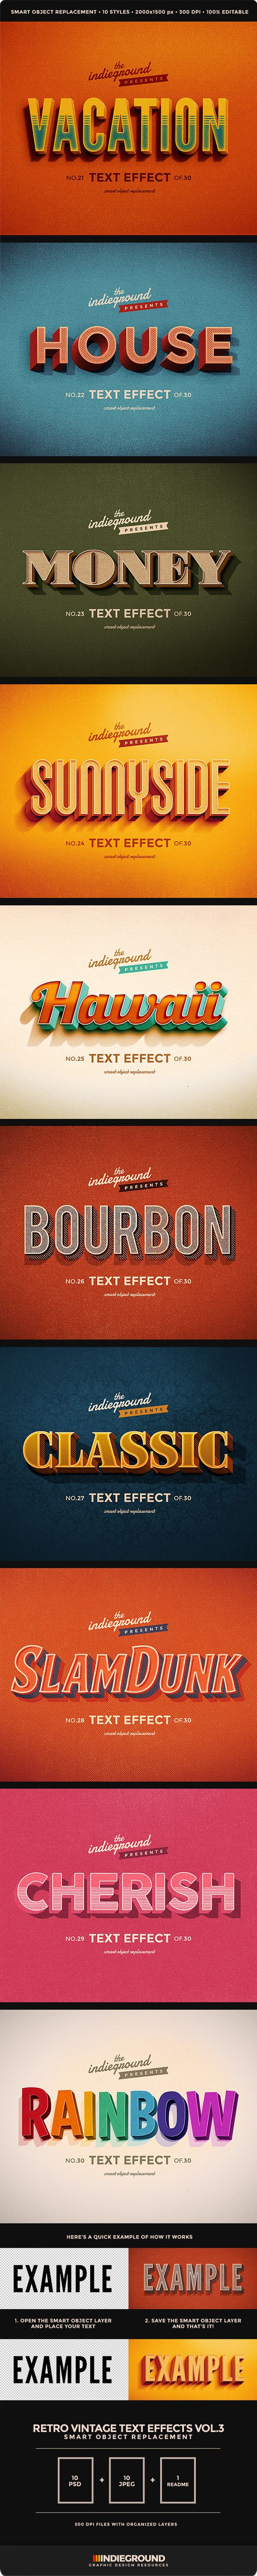 Retro Vintage Text Effects Vol 3 Vintage Text Text Effects Typography